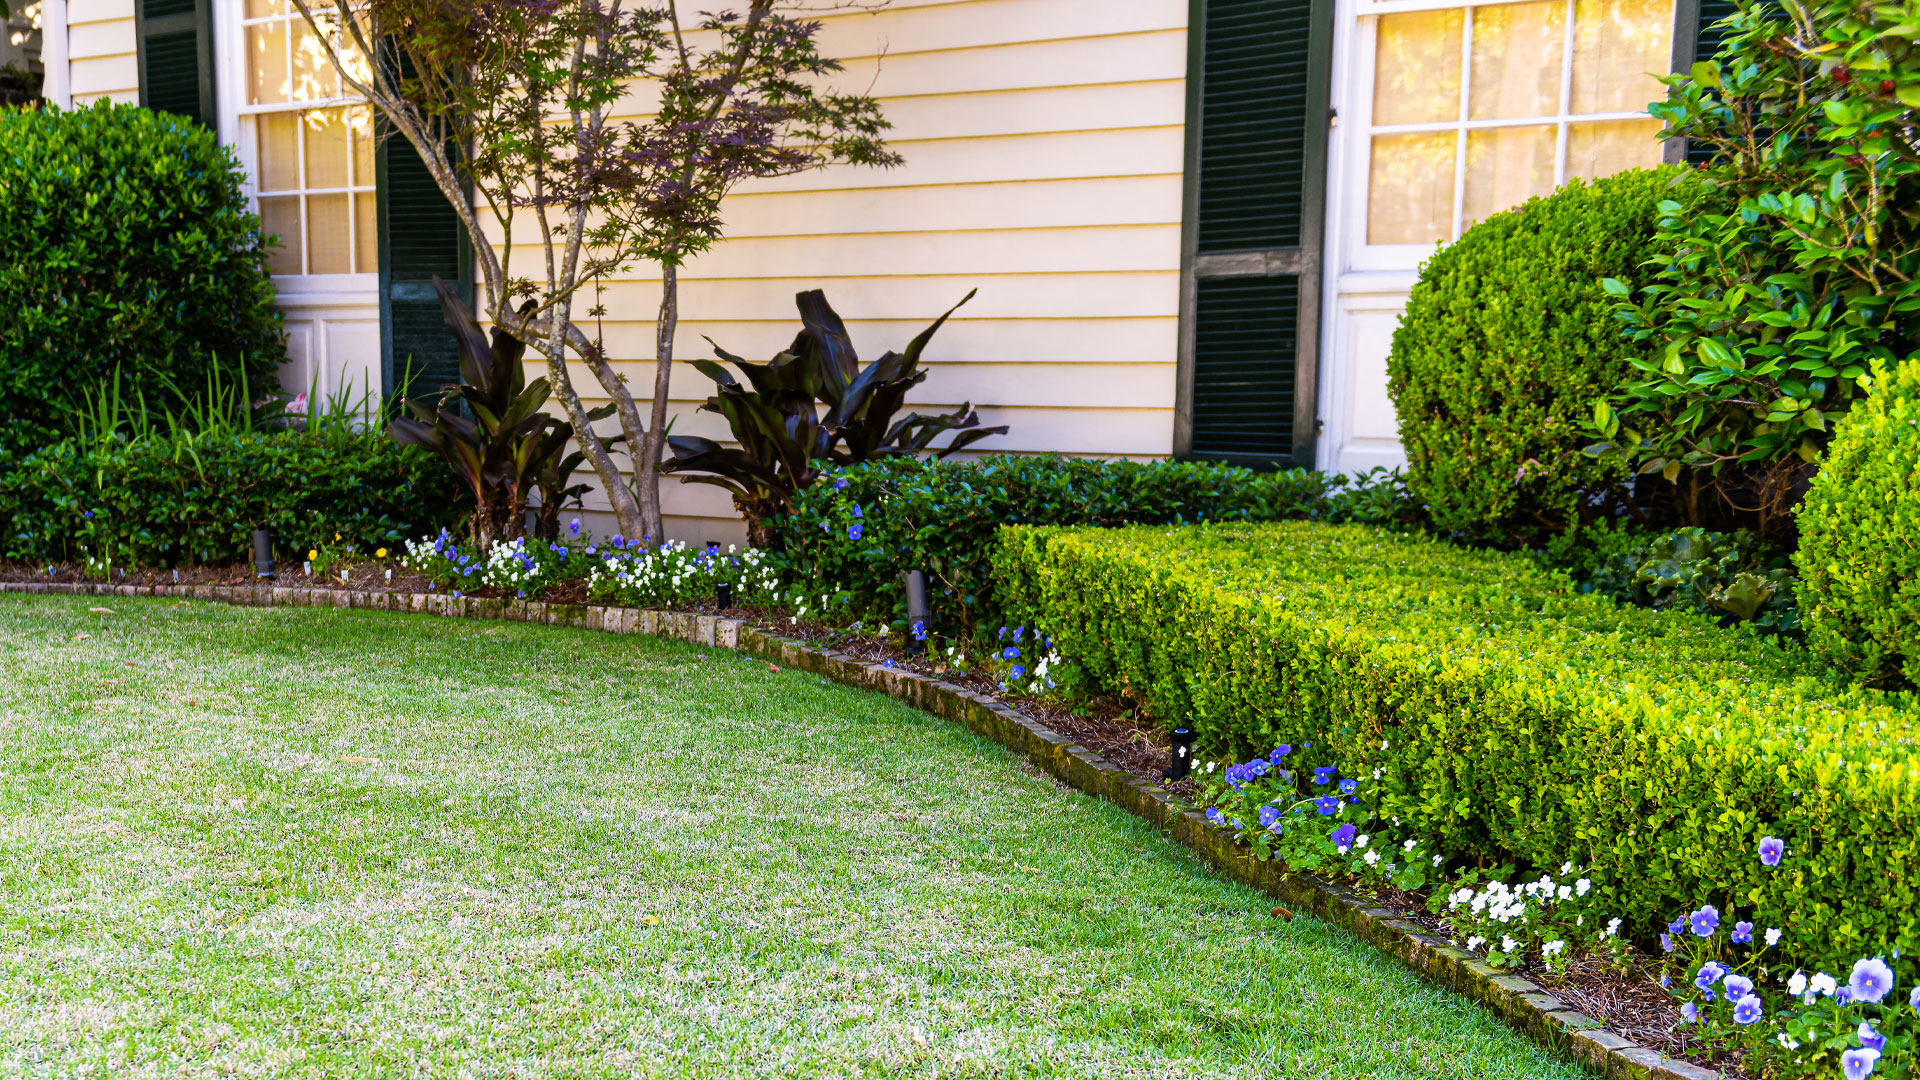 Perfectly trimmed shrubs along a landscaping bed at a property in Troutdale, OR.